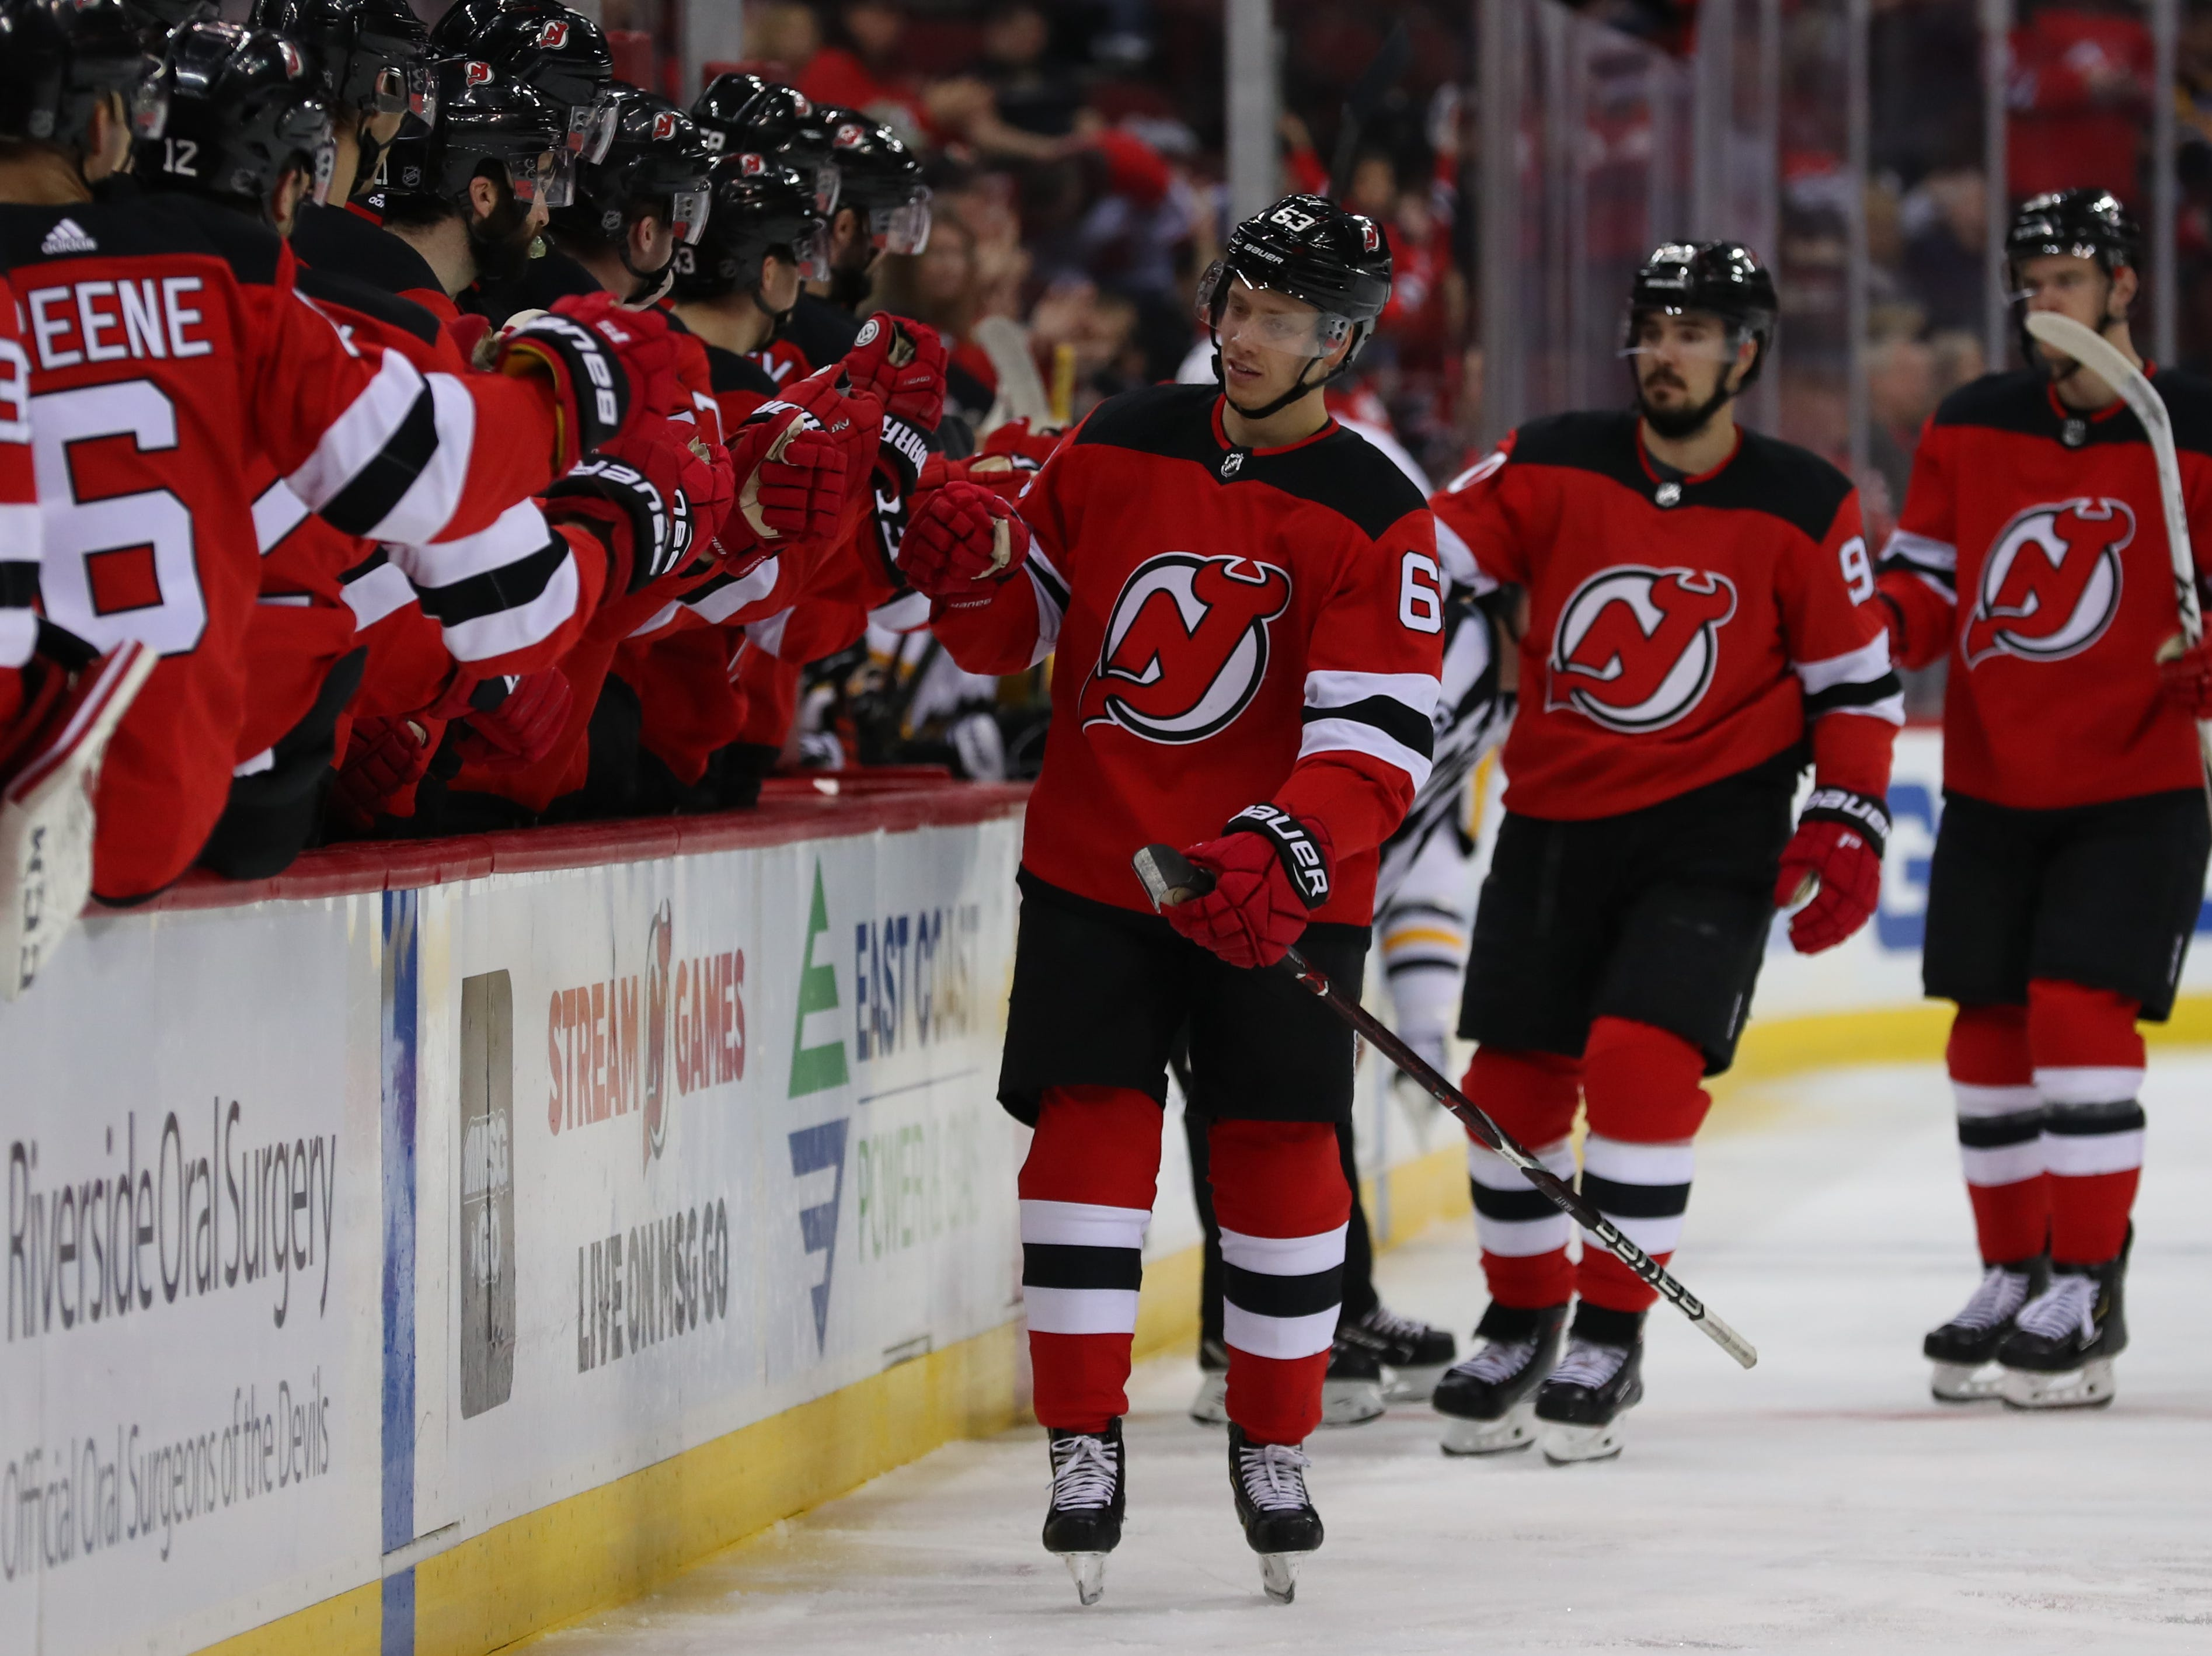 Feb 19, 2019; Newark, NJ, USA; New Jersey Devils left wing Jesper Bratt (63) celebrates his goal during the first period of their game against the Pittsburgh Penguins at Prudential Center. Mandatory Credit: Ed Mulholland-USA TODAY Sports